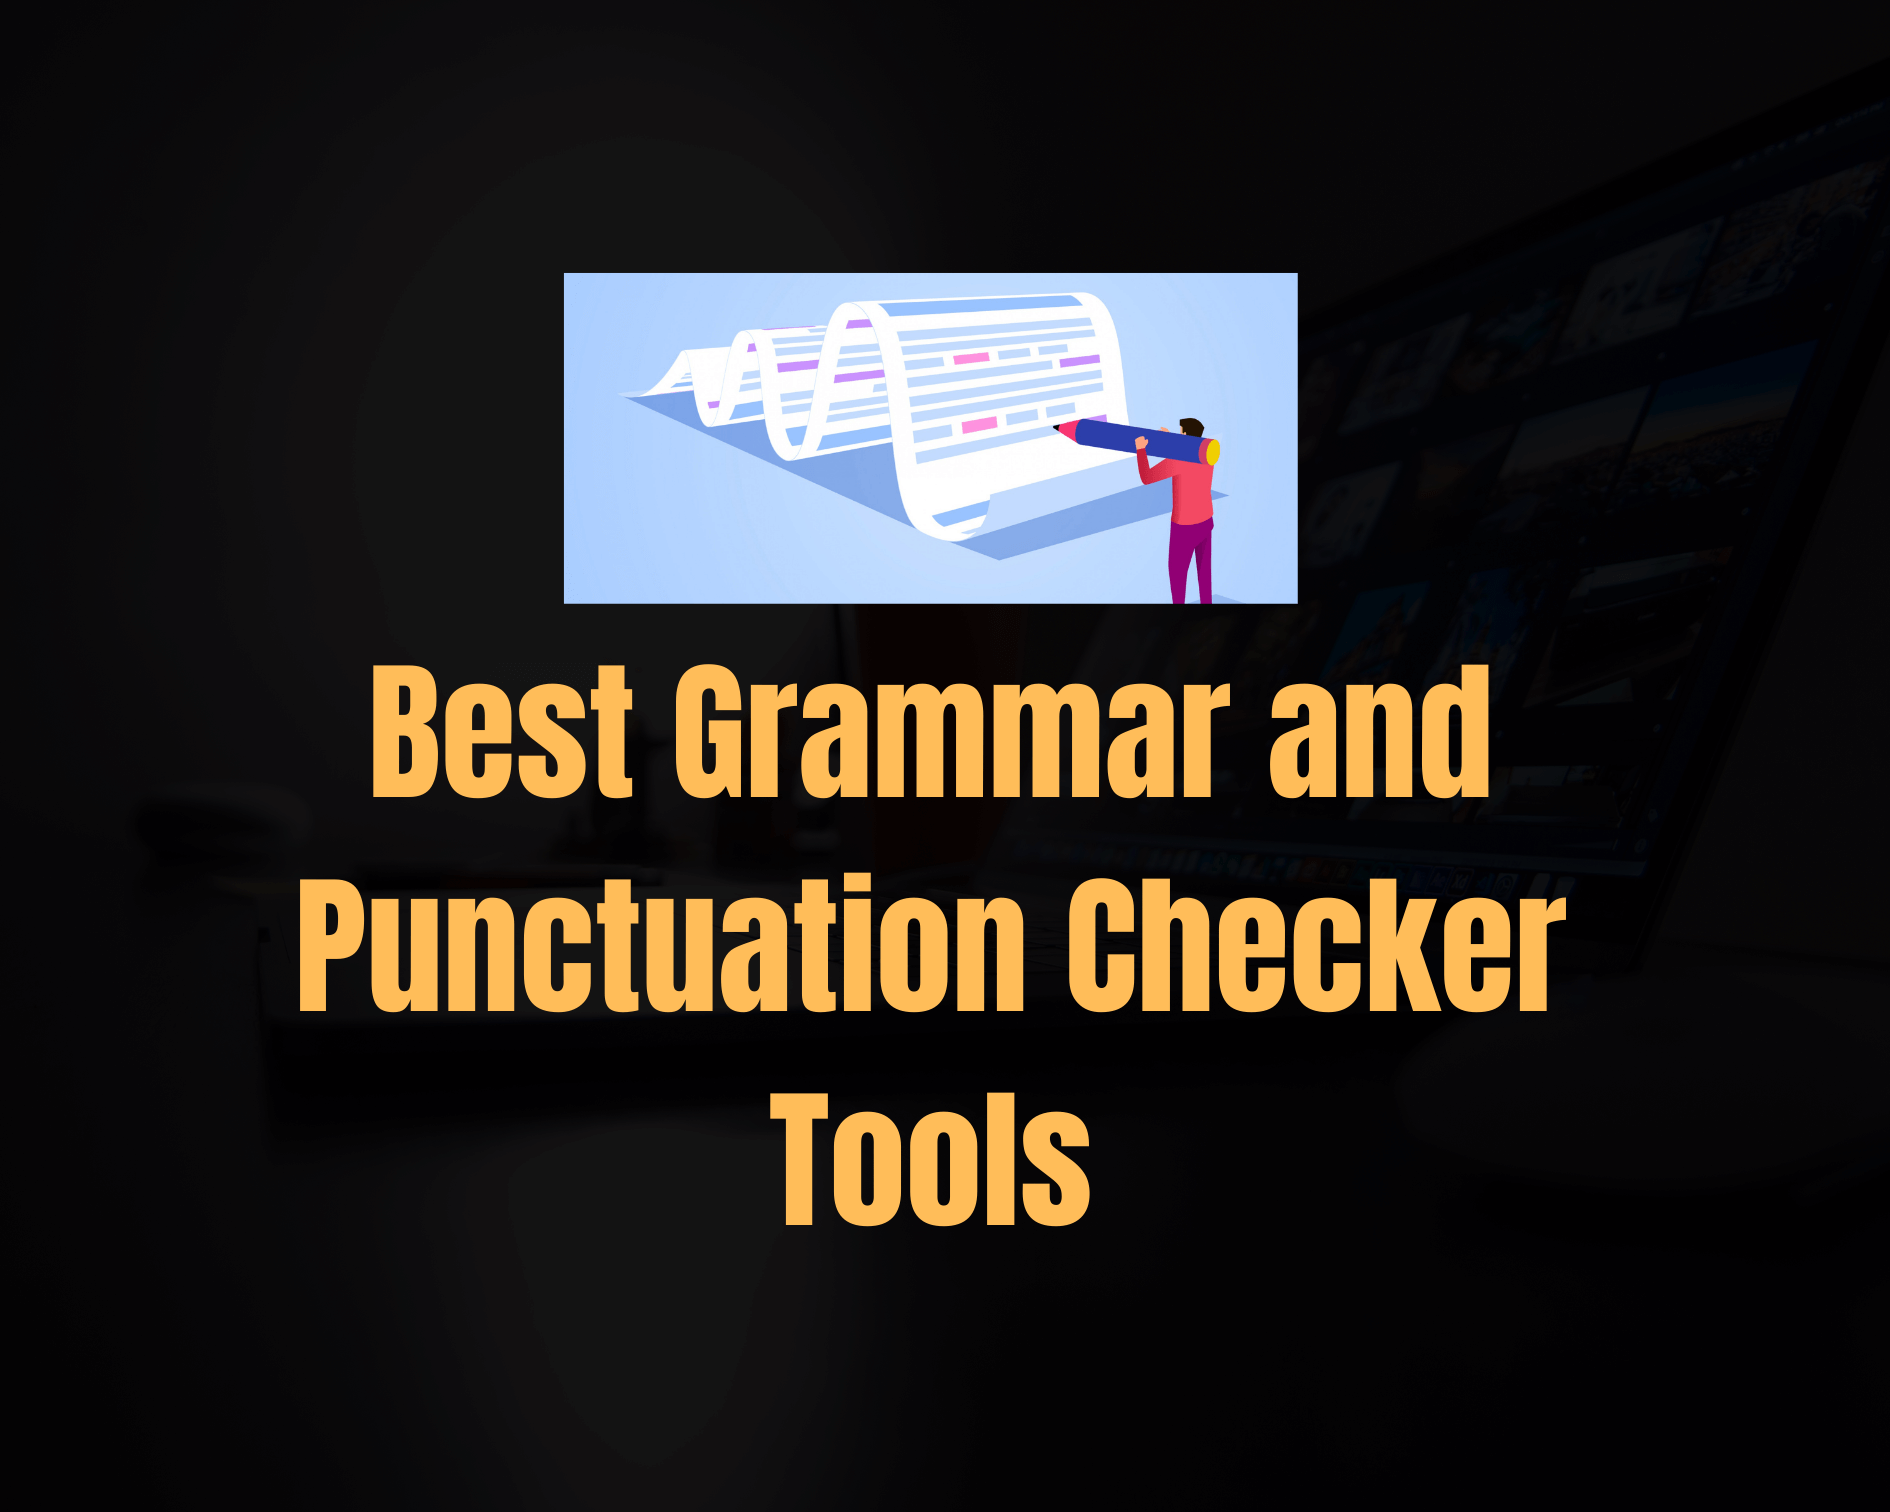 15 Best Grammar and Punctuation Checker Tools in 2020